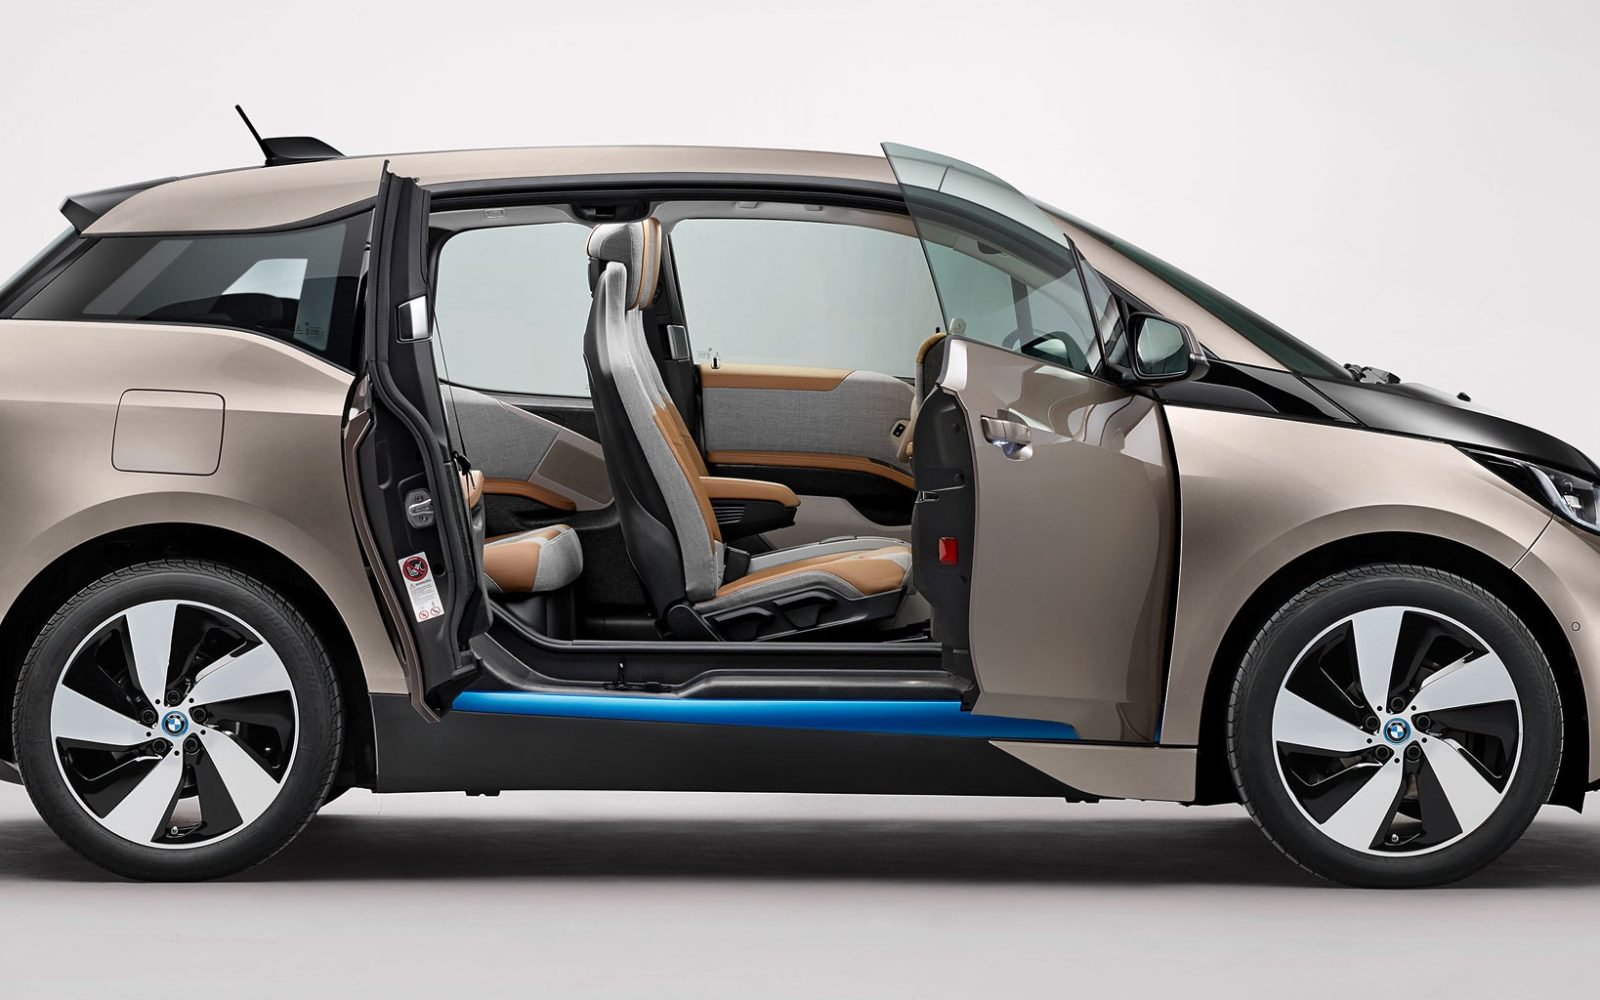 Bmw To Soon Introduce New All Electric Vehicles By Expanding Its I